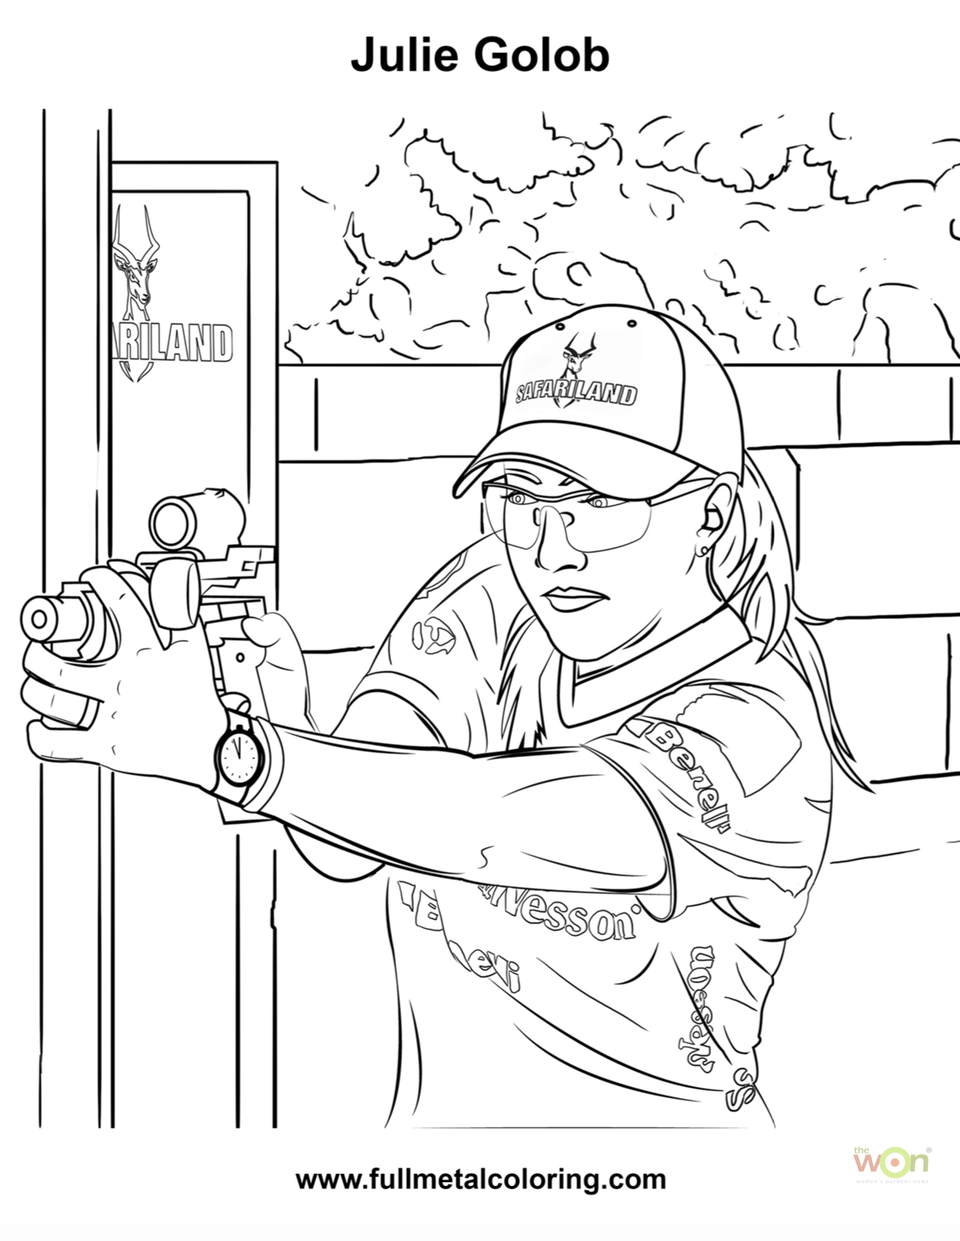 Julie Golob coloring page